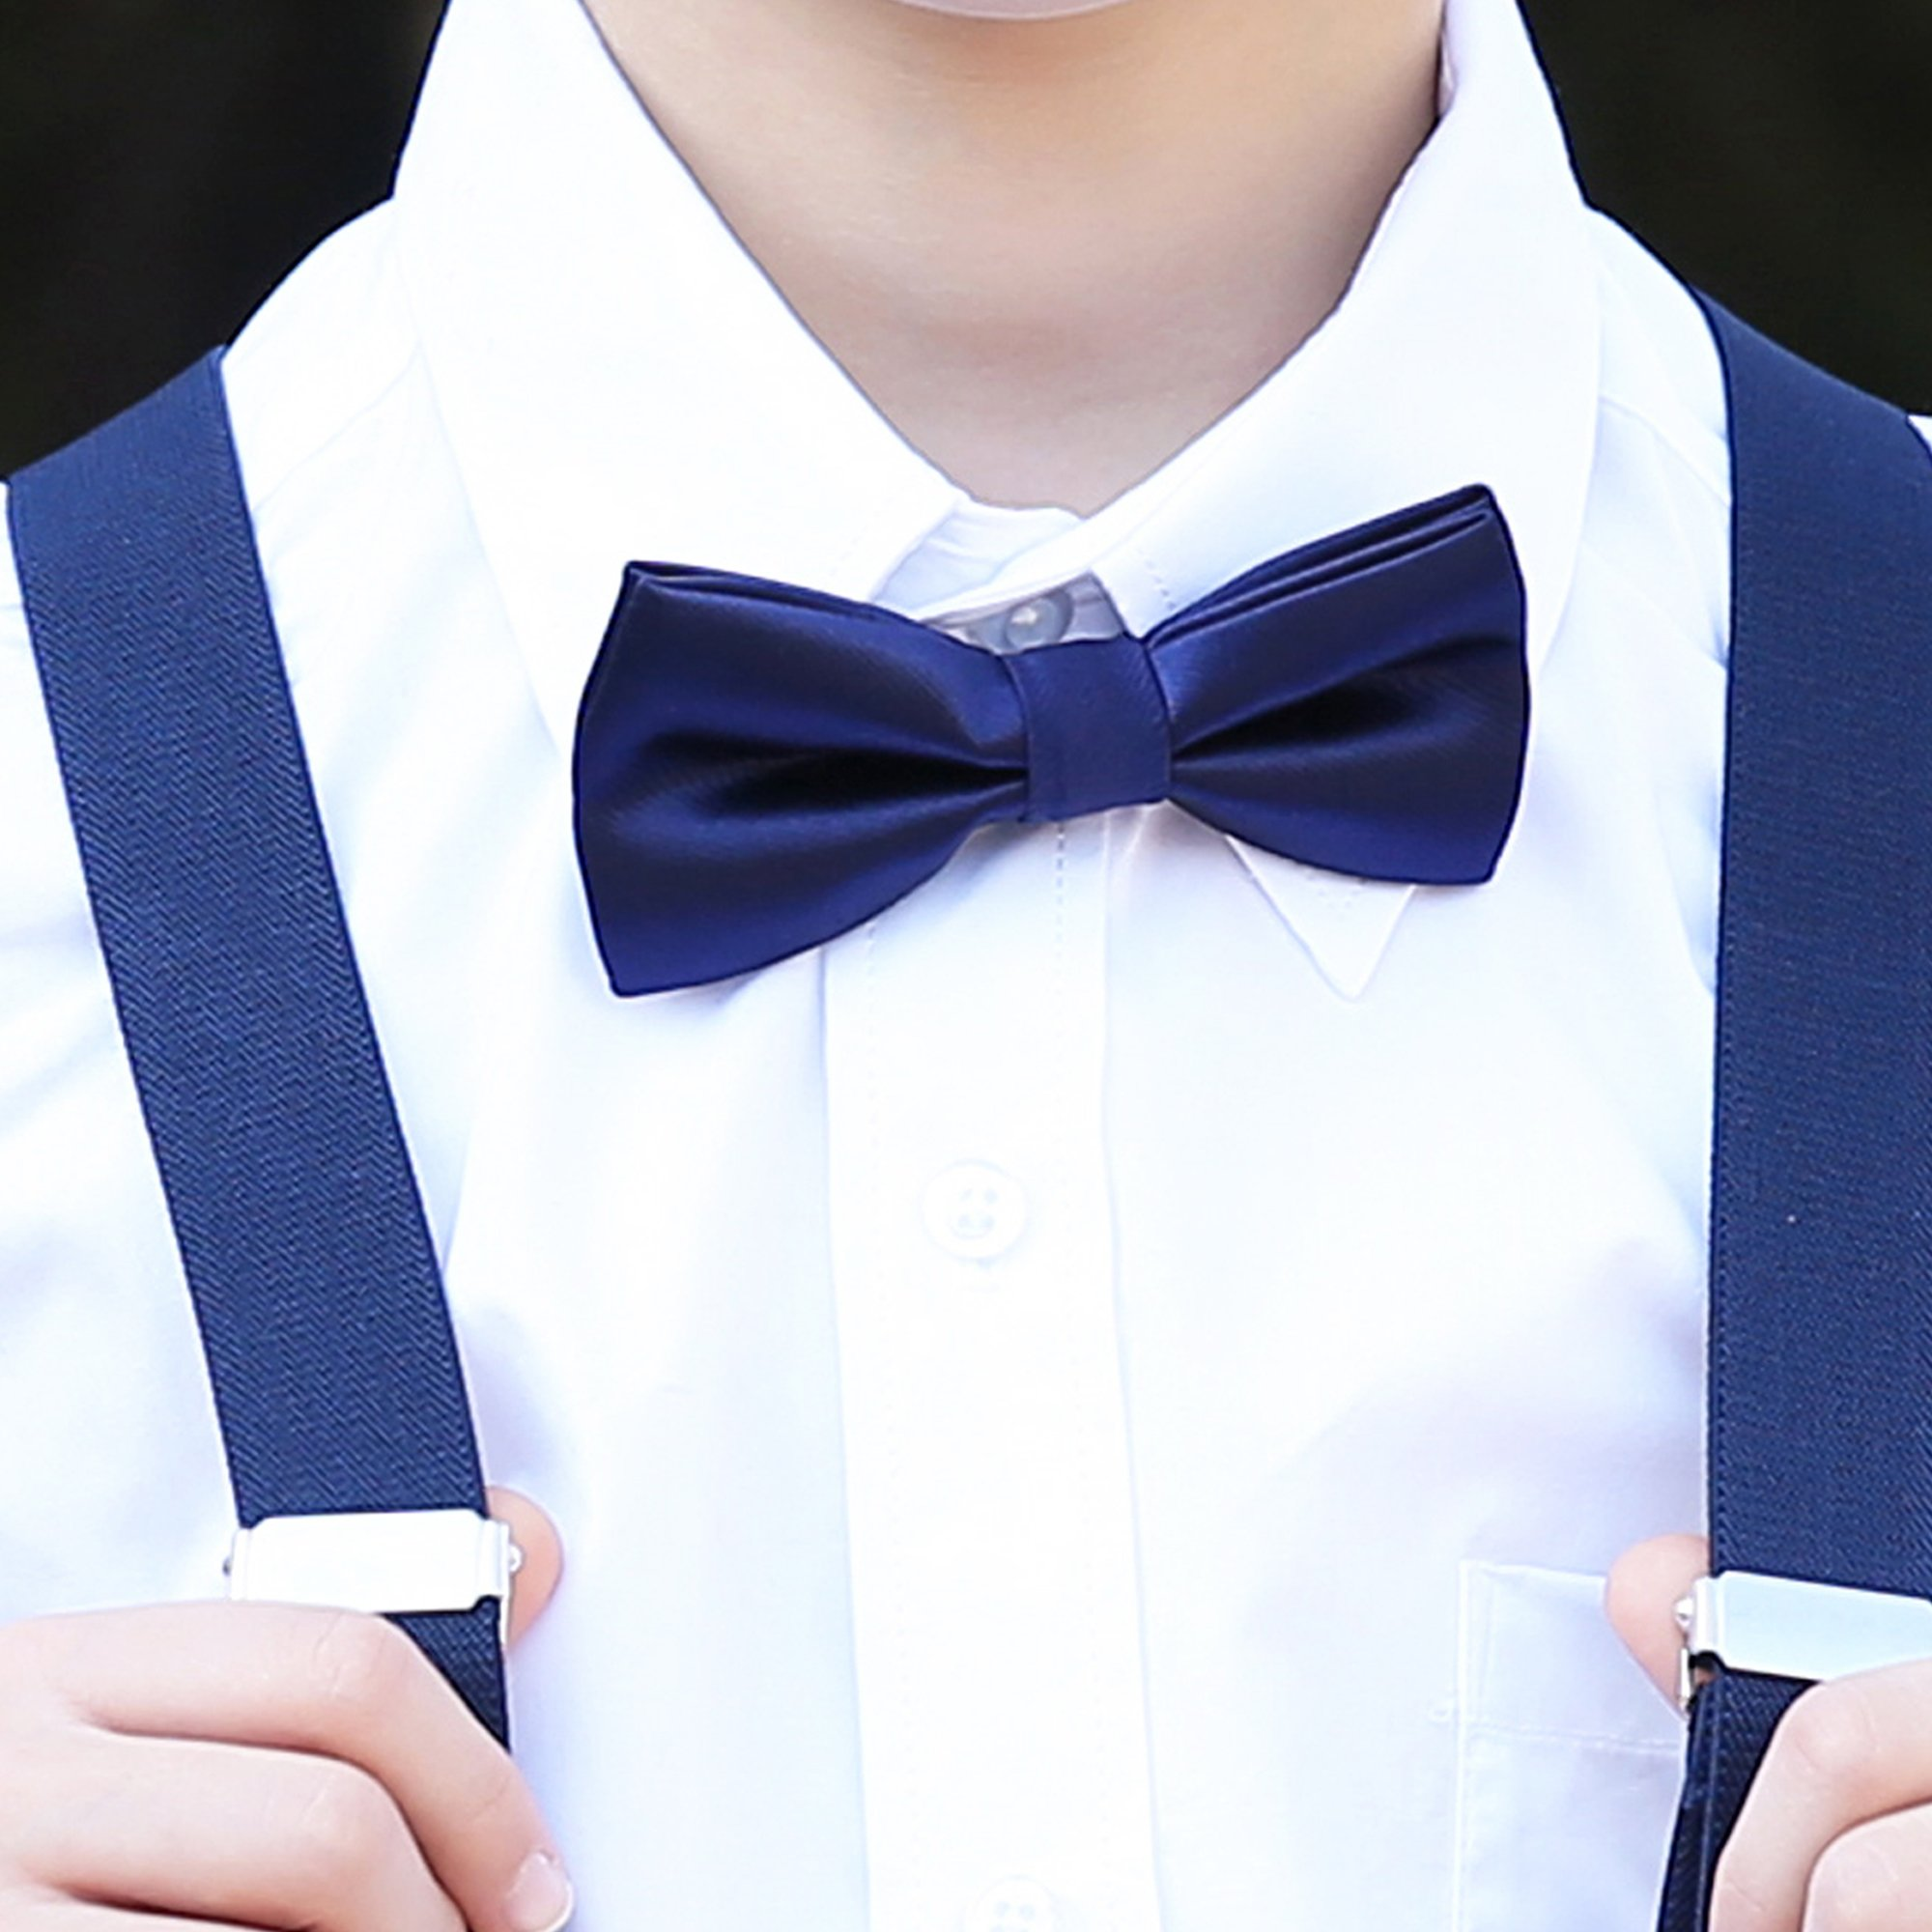 Boys Children Formal Bow Ties - 6 Pack of Solid Color Adjustable Pre Tied Bowties(Silver) by Kajeer (Image #5)